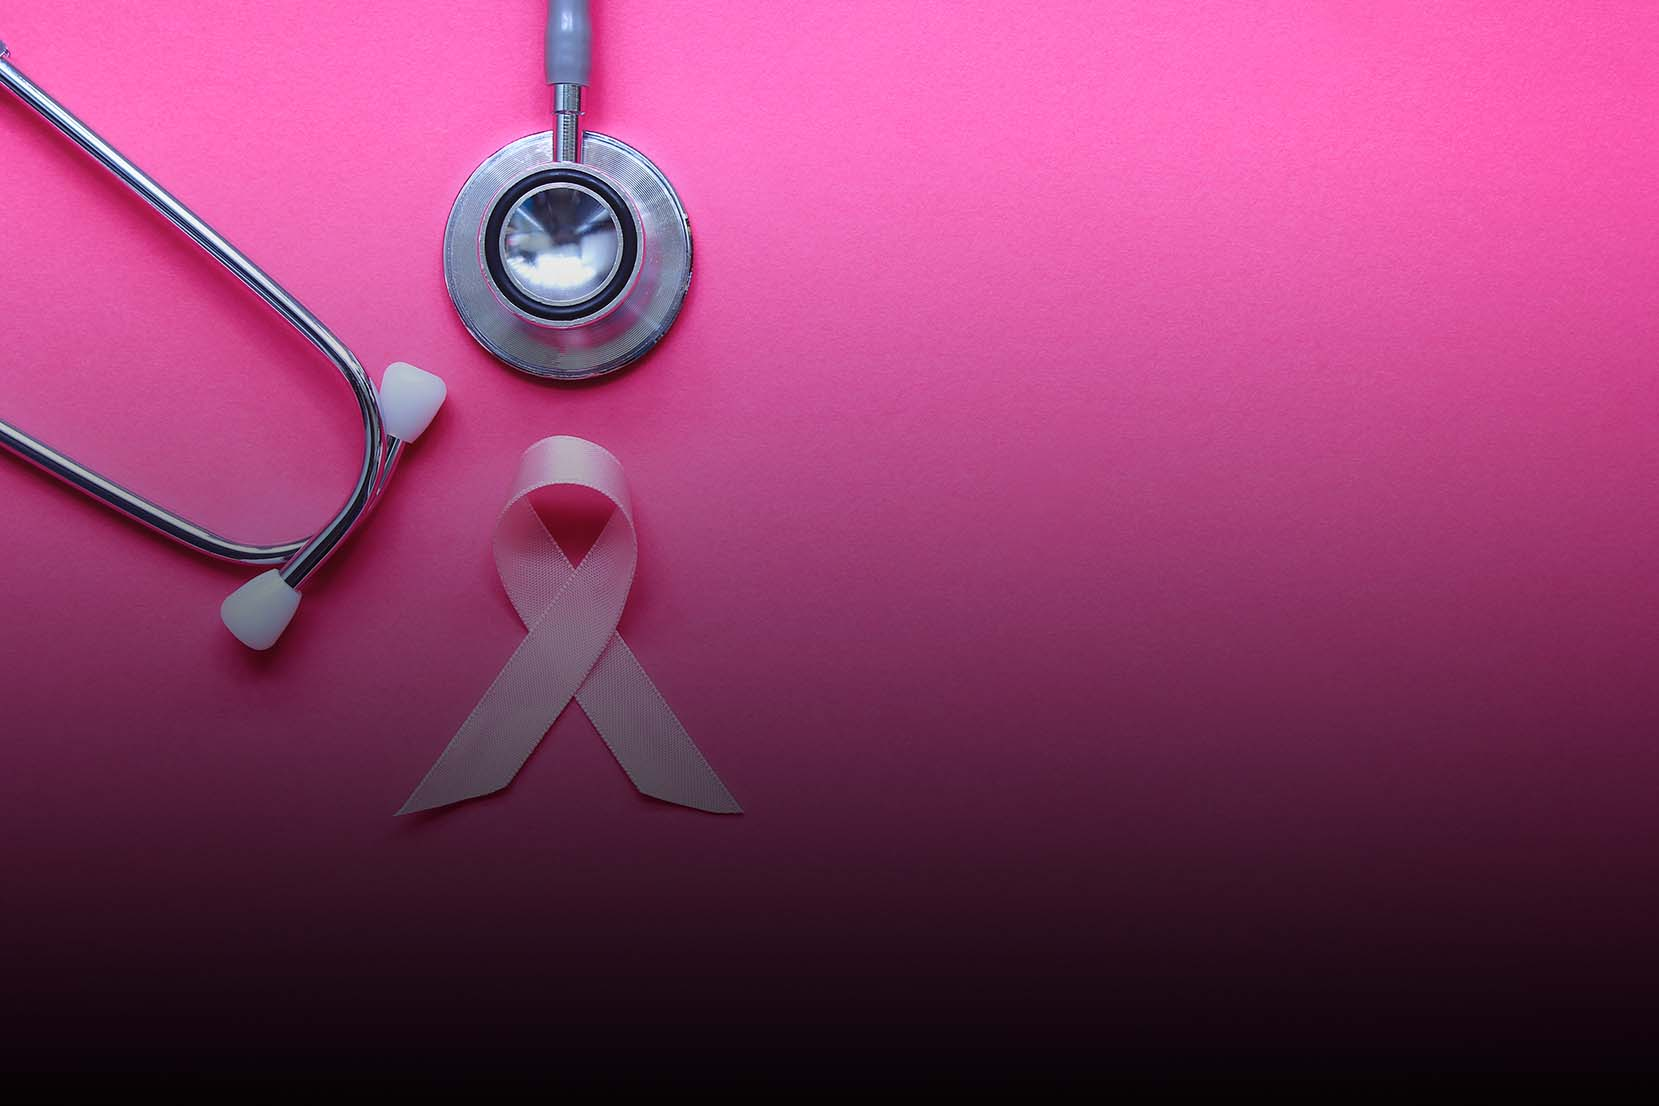 Ways to Detect Breast Cancer at Home: 8 Important Symptoms You Should Know